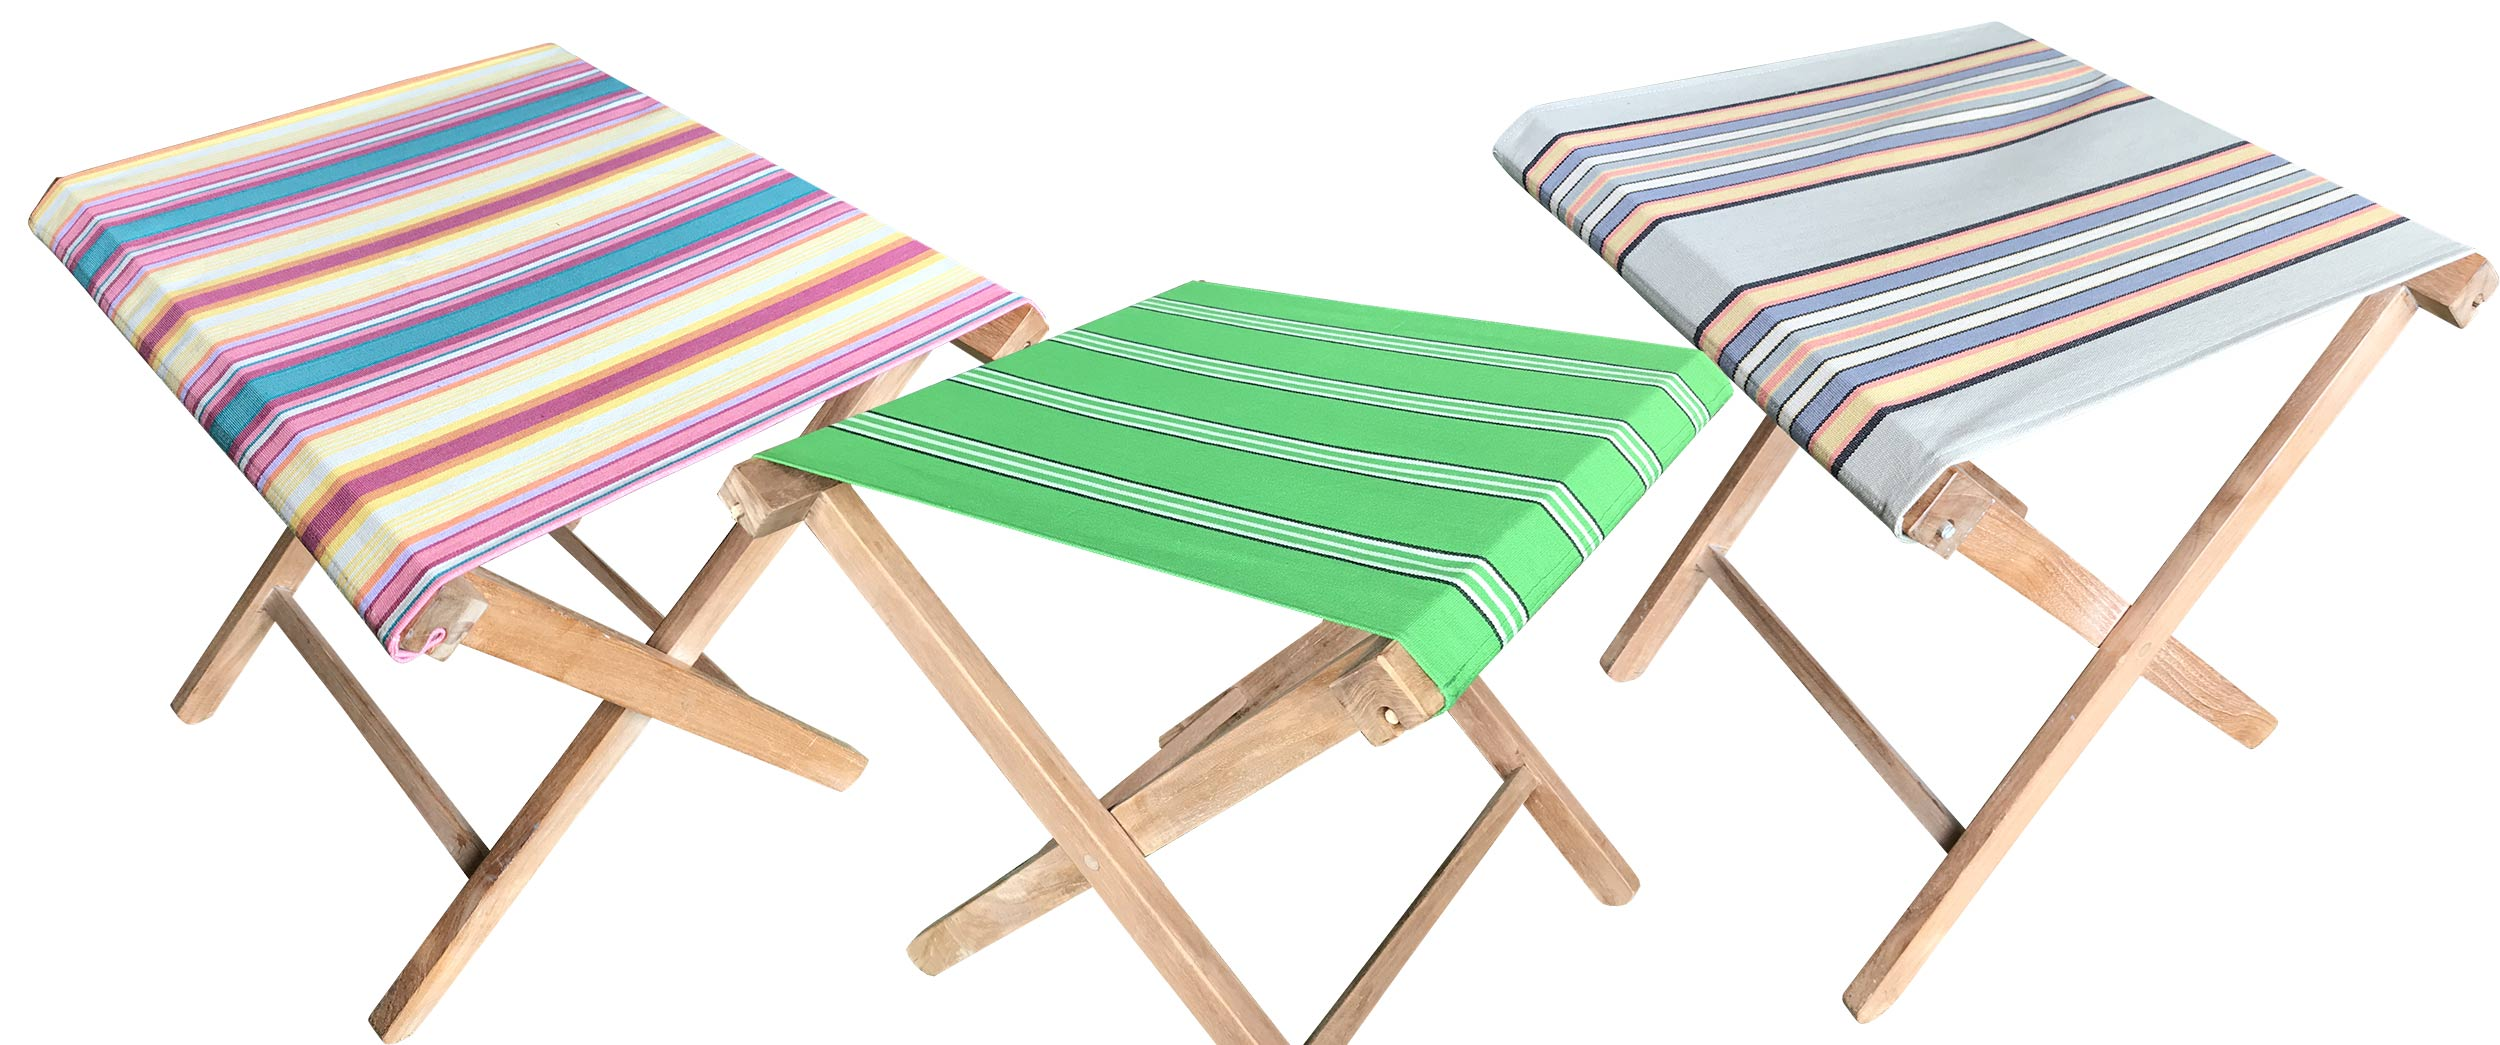 Portable Folding Stools with Striped Seats